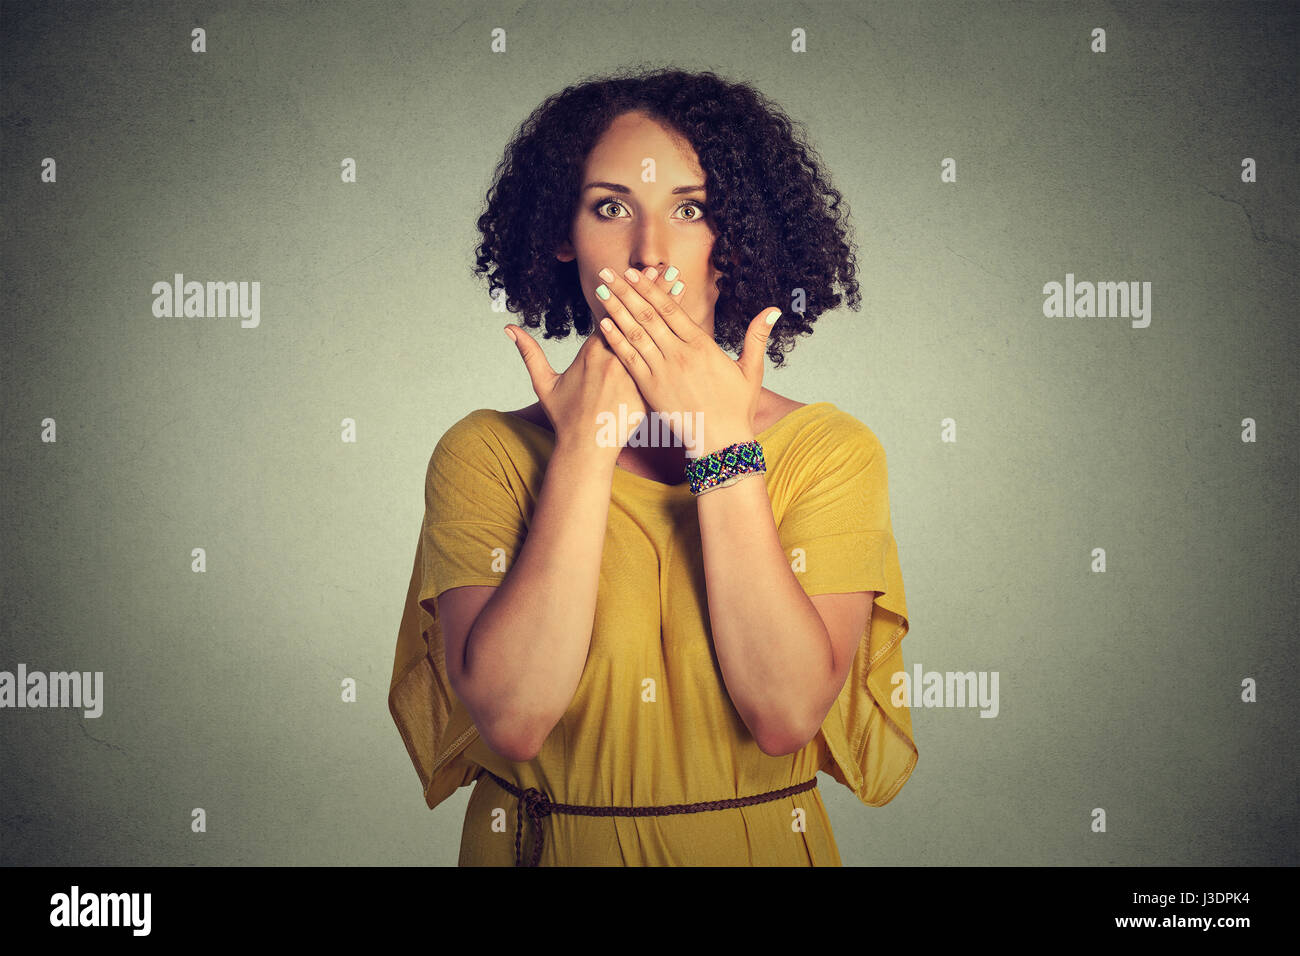 Closeup portrait young woman covering closed mouth with hands. Speak no evil concept isolated on grey wall background. - Stock Image